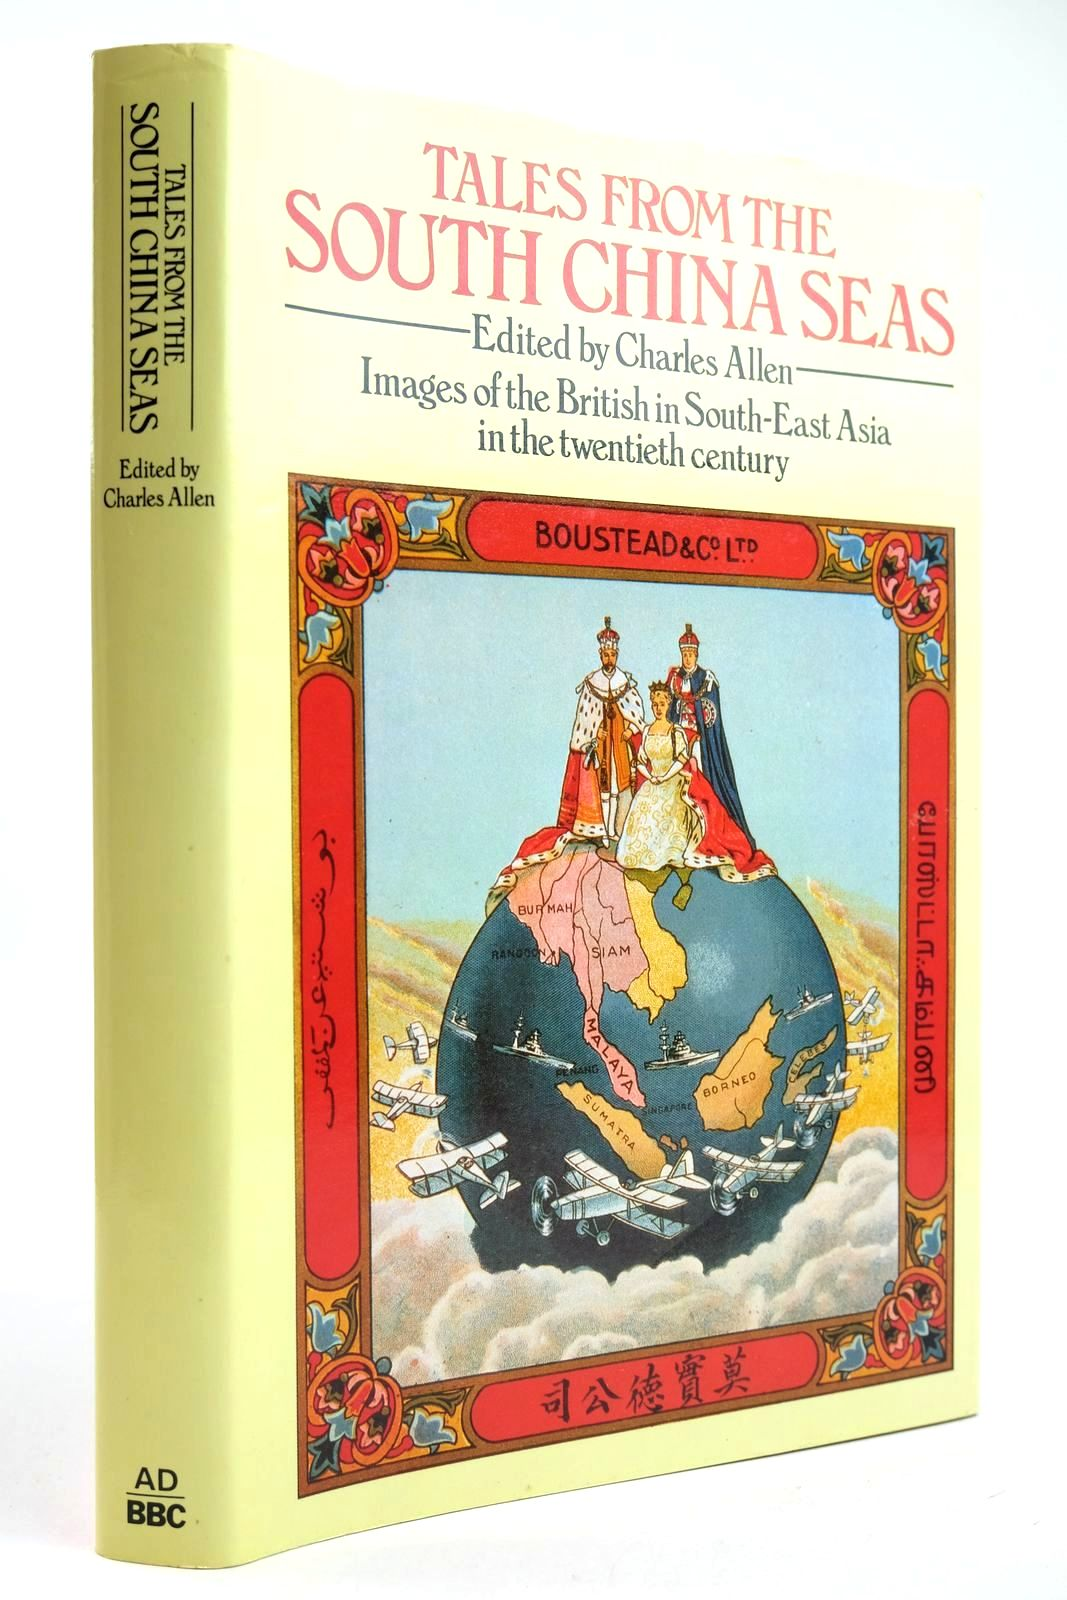 Photo of TALES FROM THE SOUTH CHINA SEAS- Stock Number: 2132486